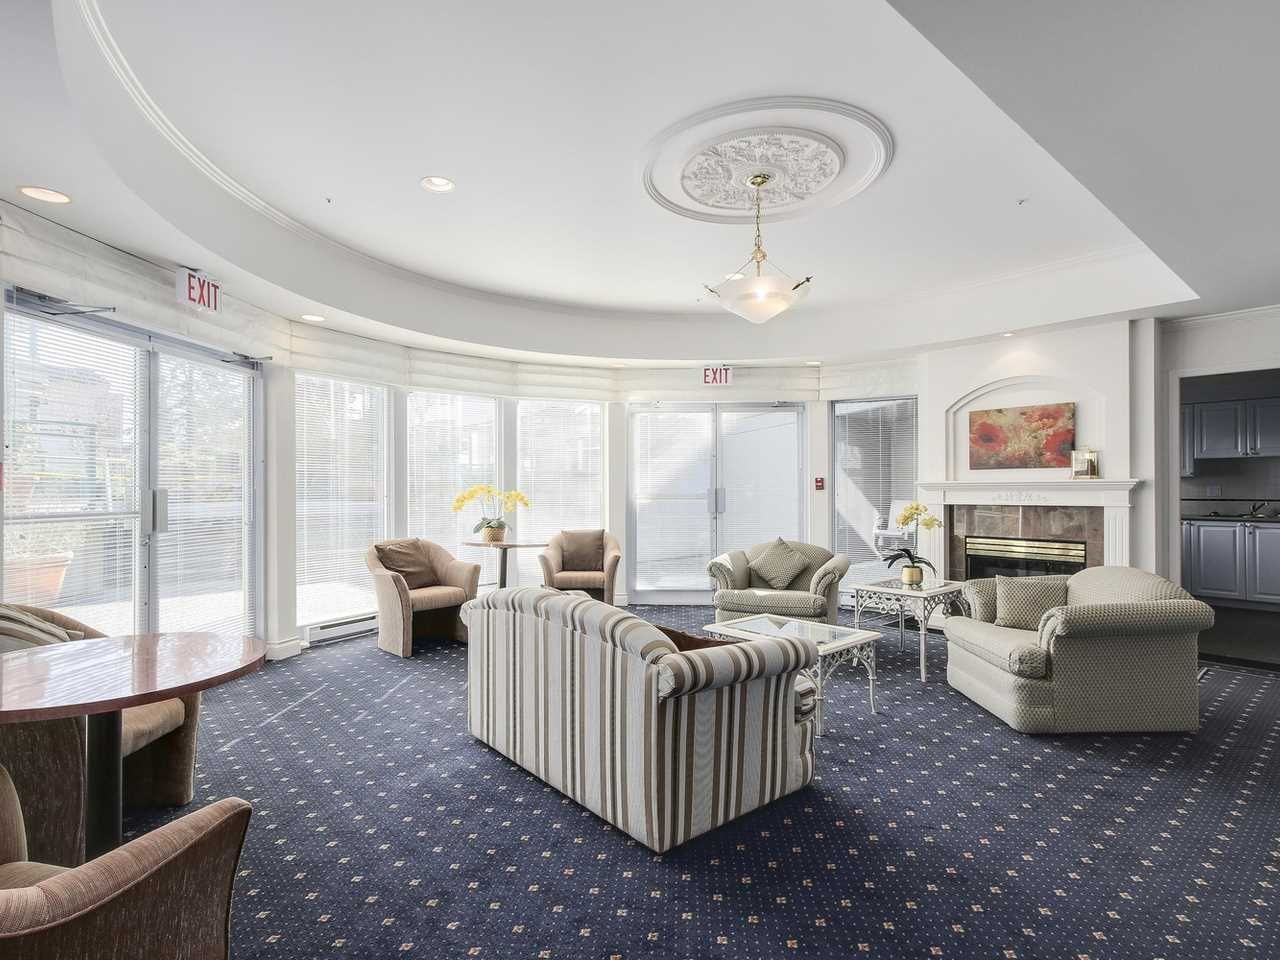 """Photo 16: Photos: 209 1575 BEST Street: White Rock Condo for sale in """"THE EMBASSY"""" (South Surrey White Rock)  : MLS®# R2151526"""